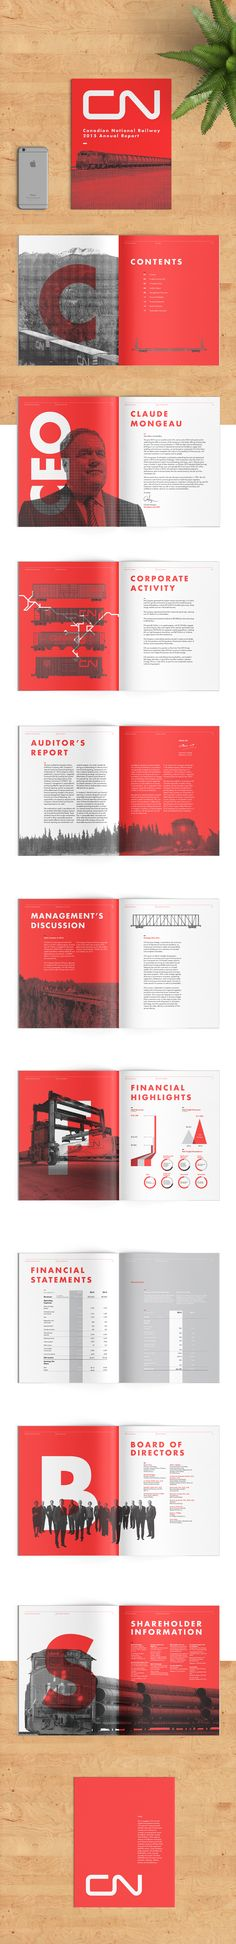 CN Annual Report on Behance